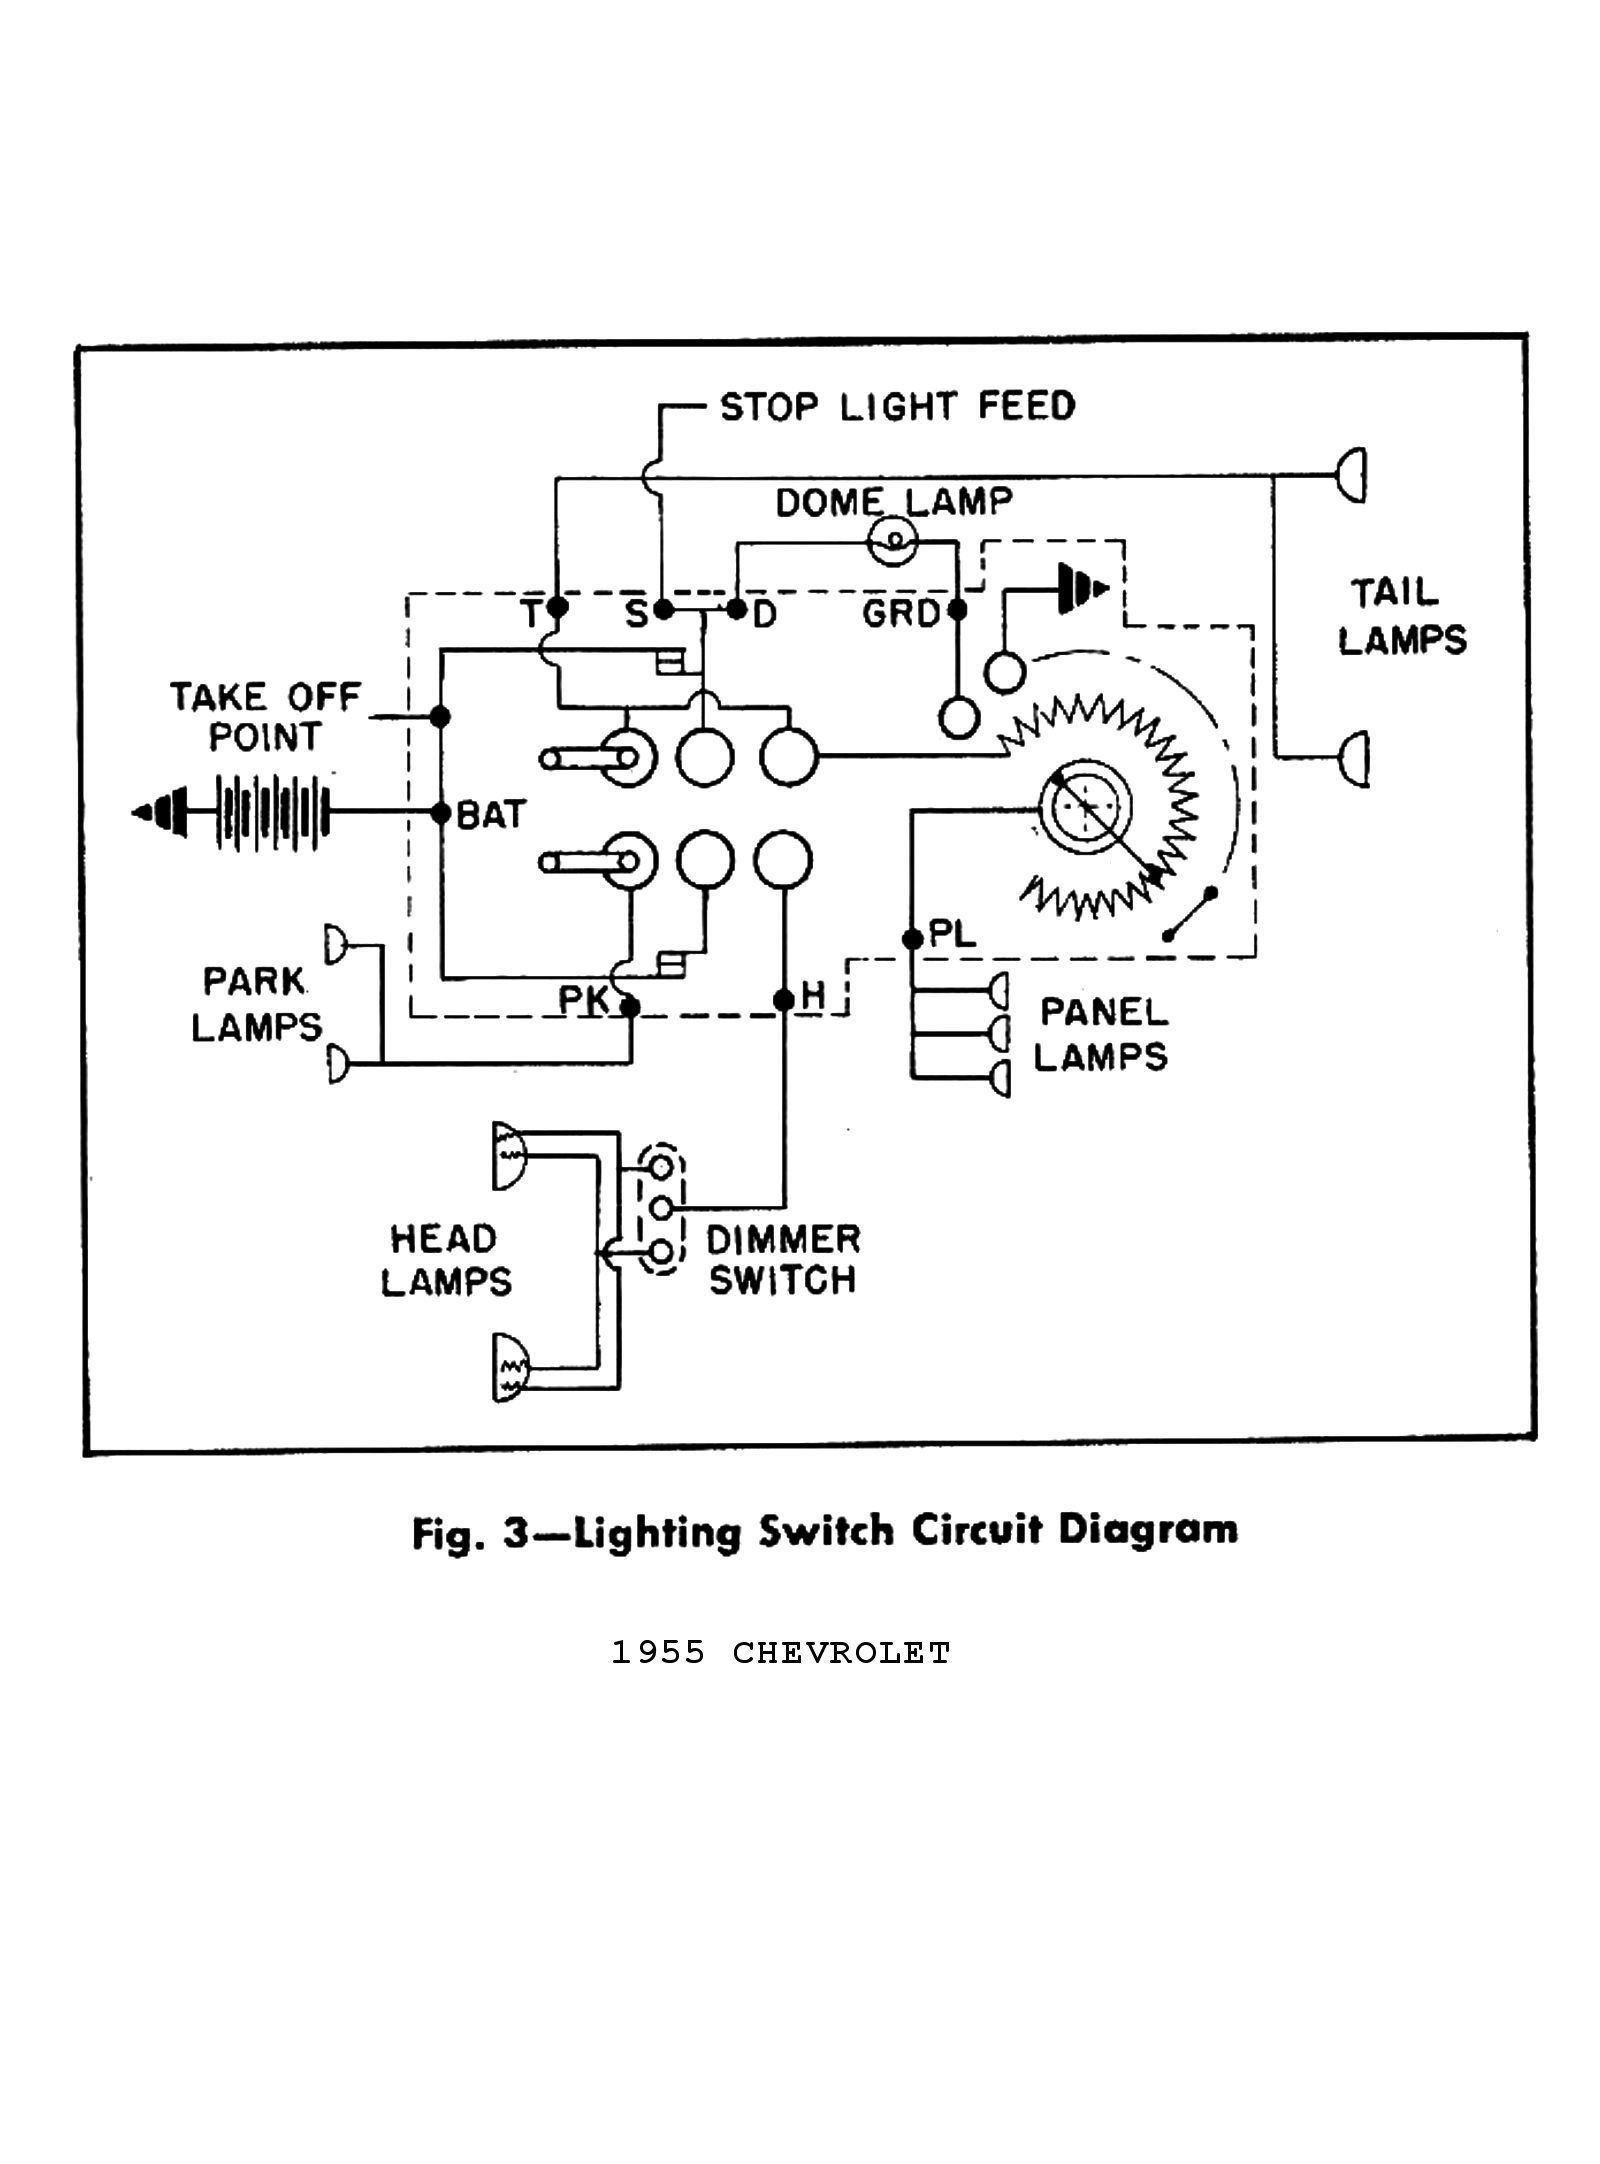 hight resolution of gm dome light wiring harness wiring diagram page 82 chevy truck courtesy light wiring diagram